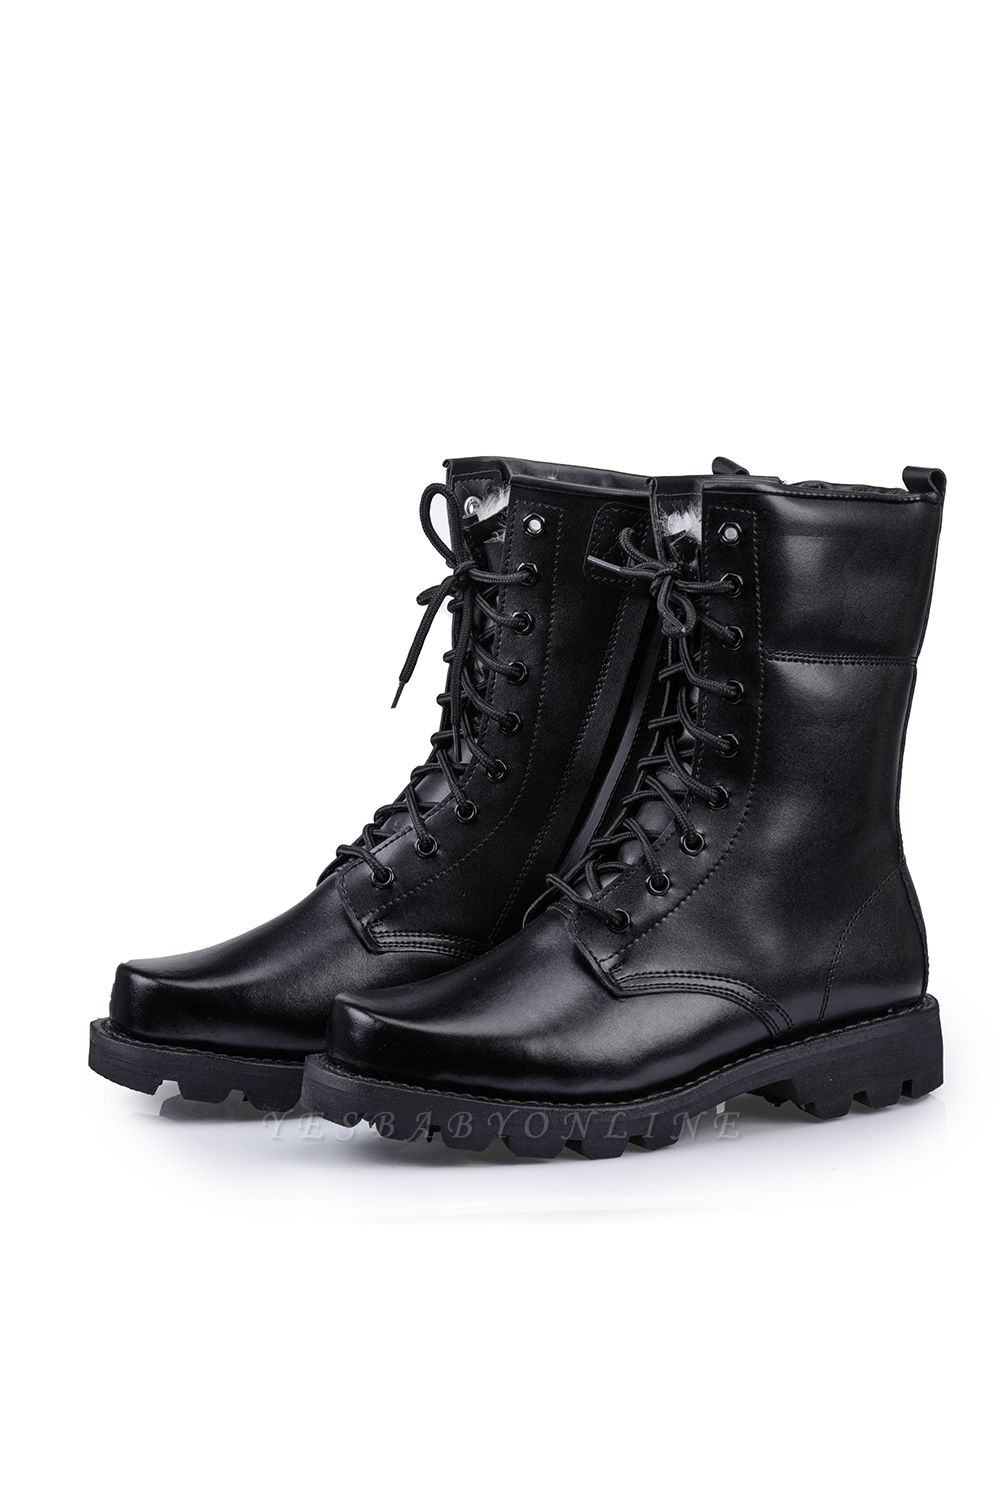 Waterproof Military Tactical Boots Army Jungle Boots Outdoor Sneaker On Sale